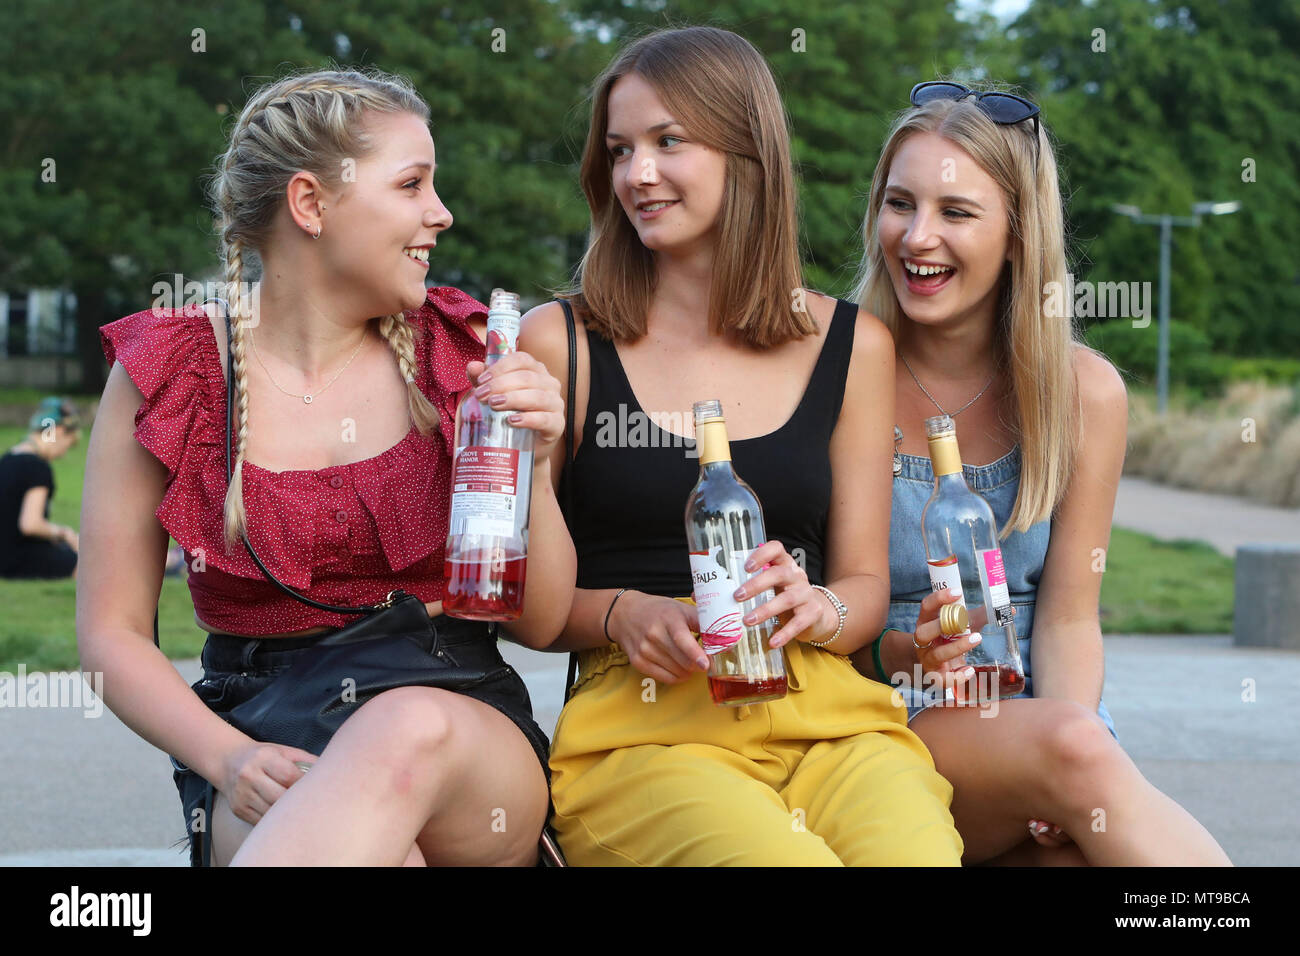 Three young women drinking wine in a Brighton park - Stock Image